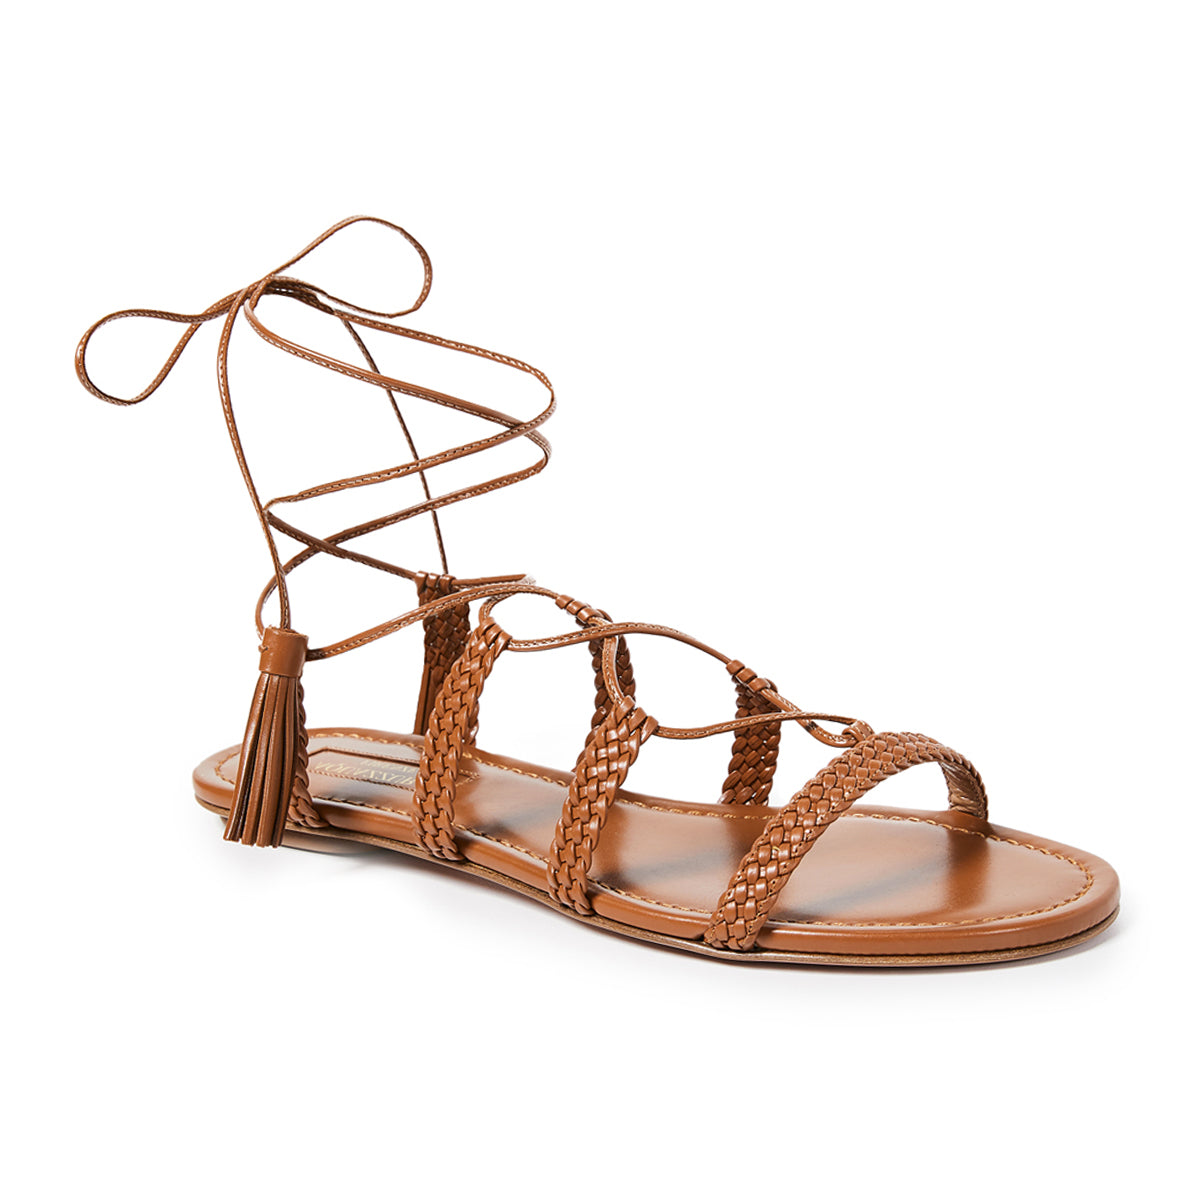 Stromboli Plaited Flat Tie Up Sandals